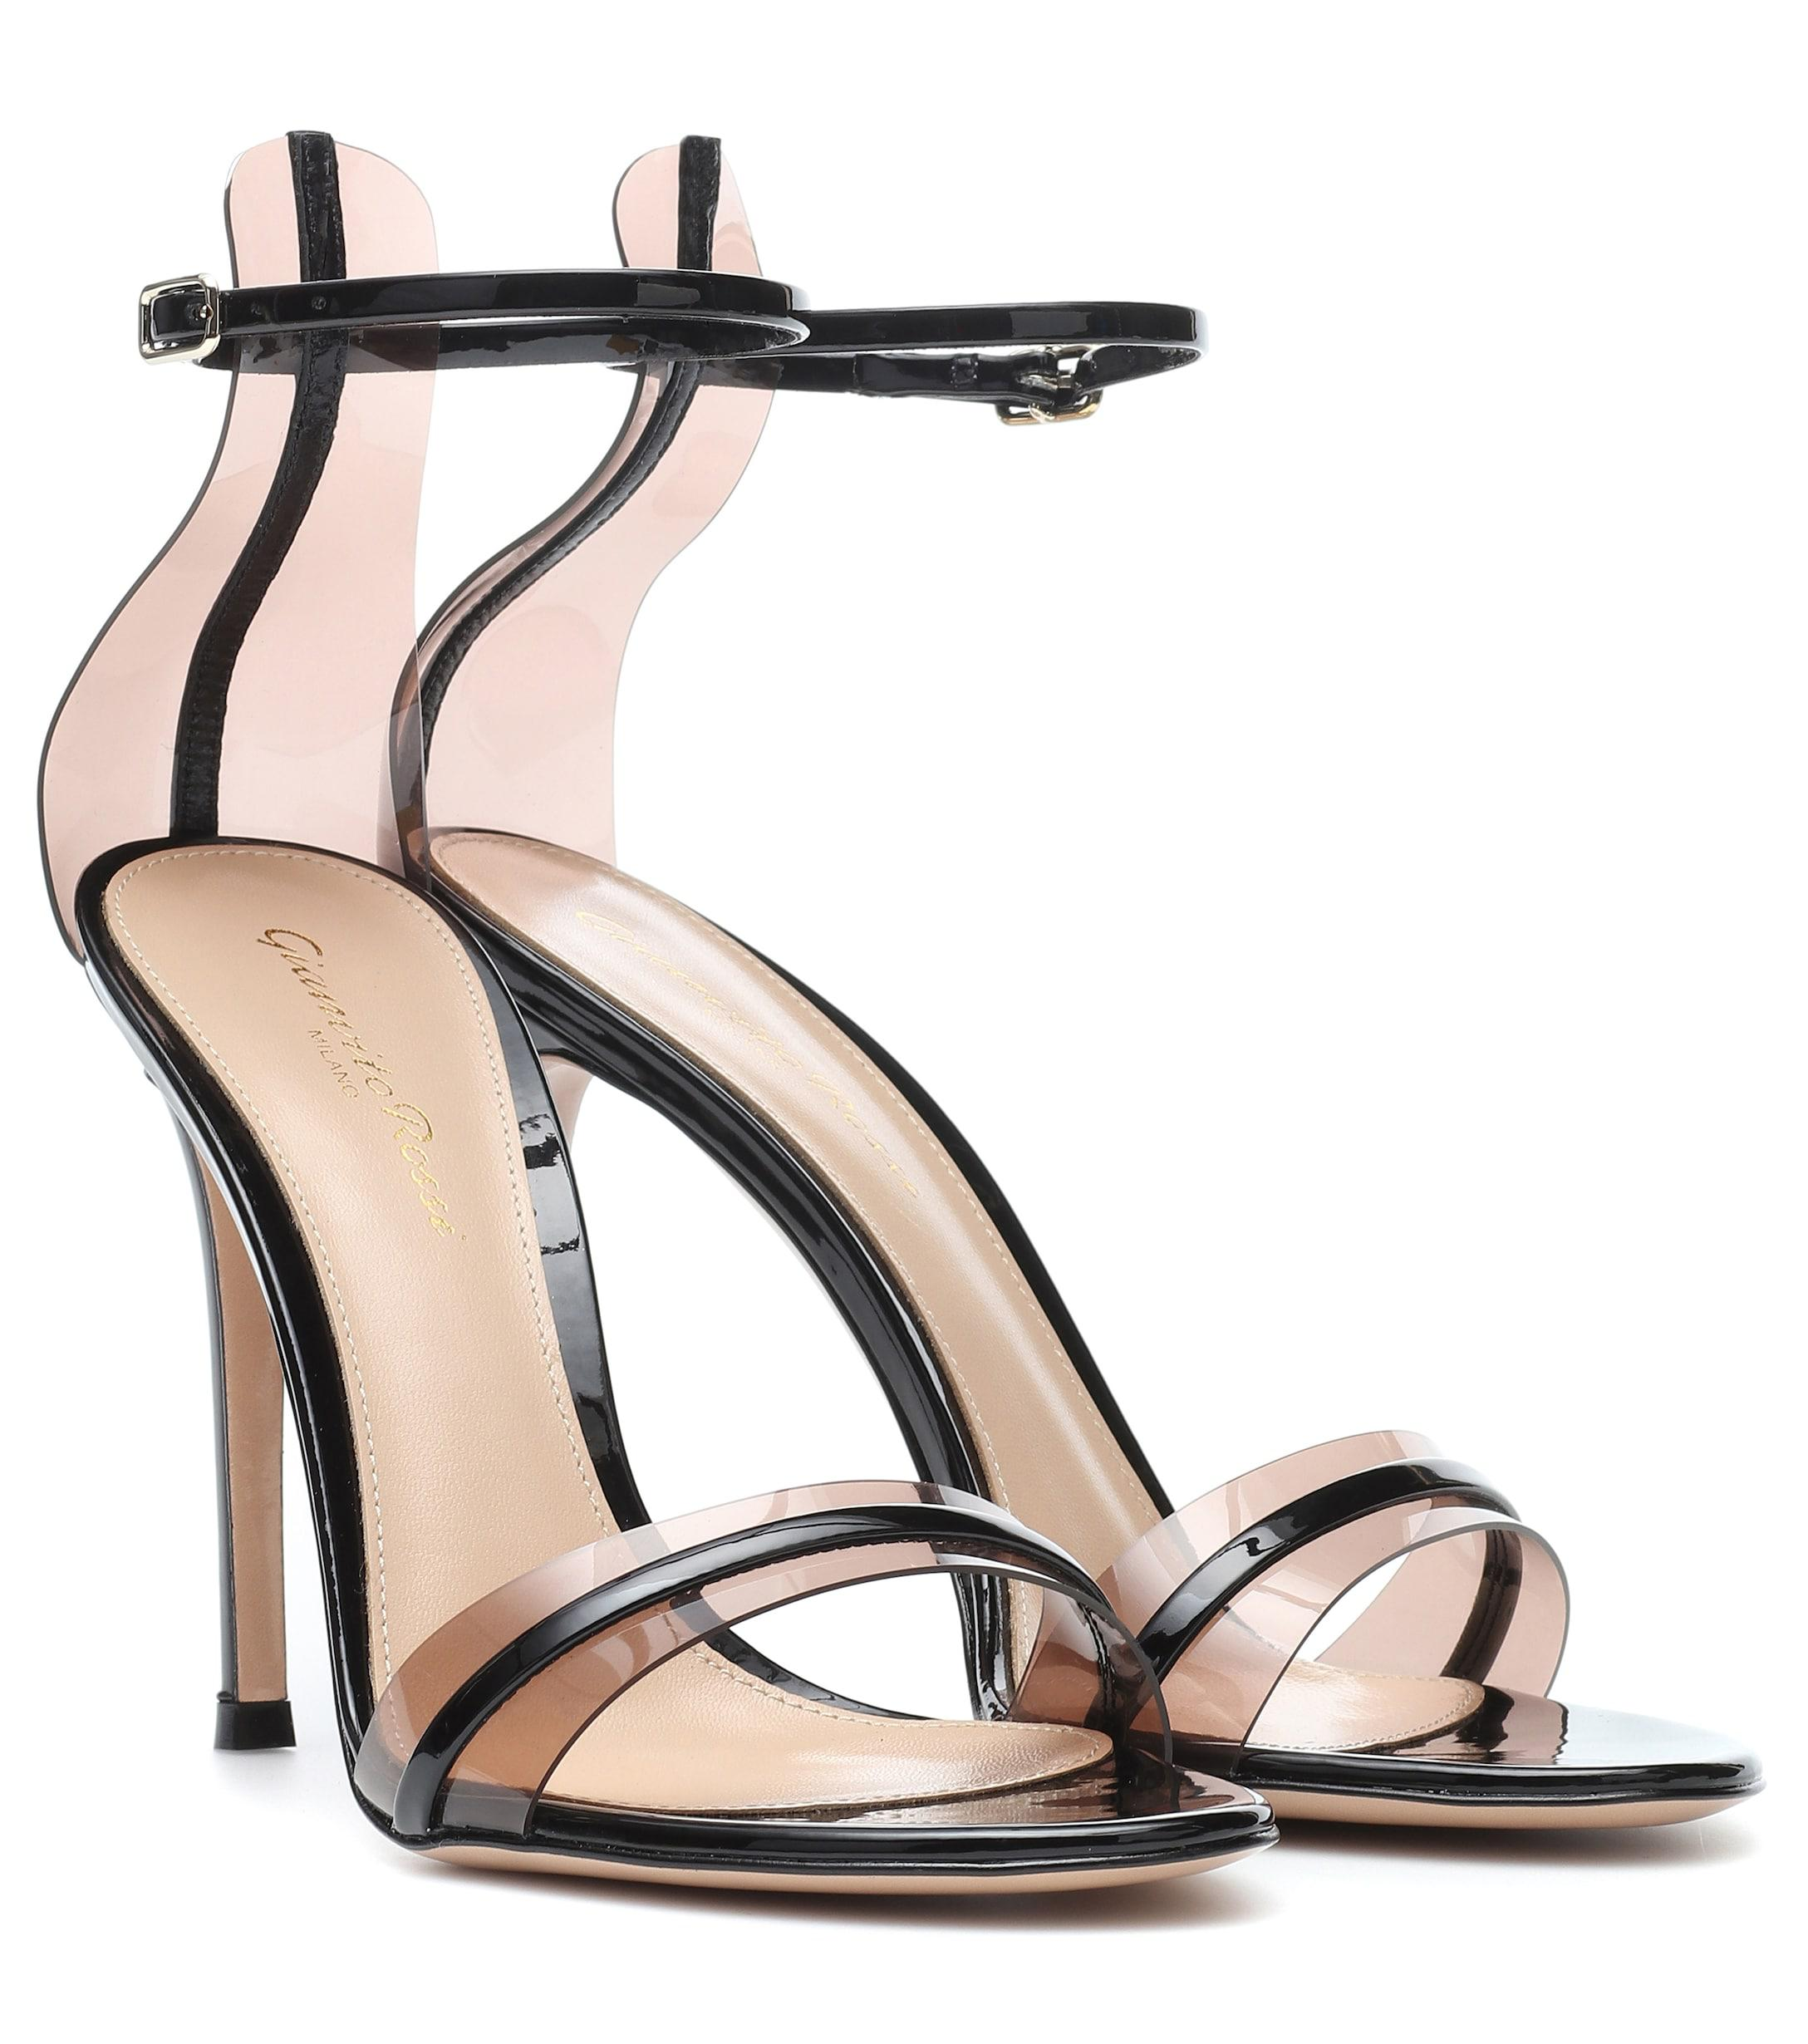 c6965de12d91 Lyst - Gianvito Rossi G-string 105 Patent Leather Sandals in Black